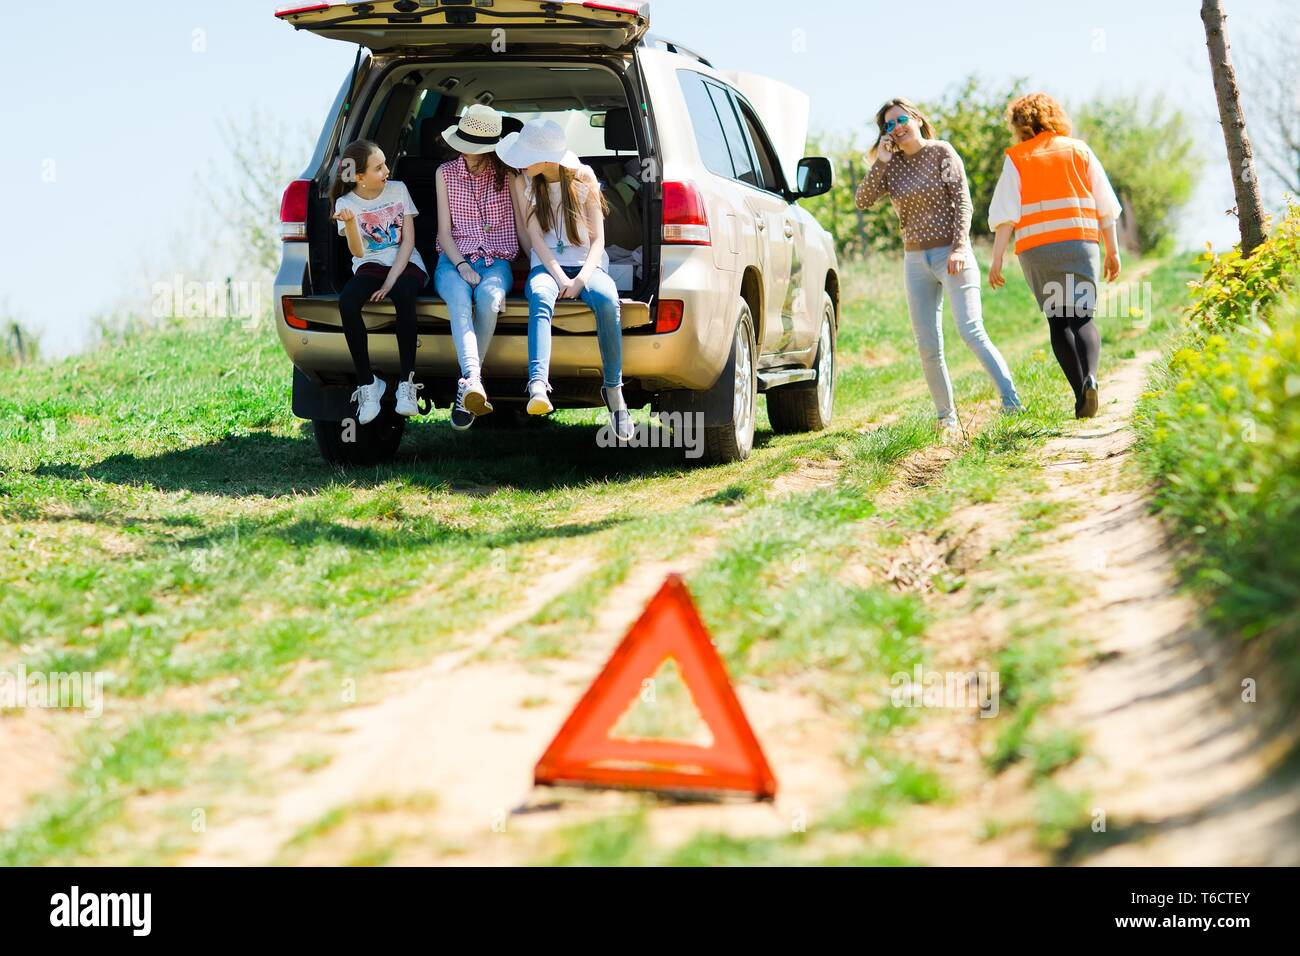 A breakdown triangle stands near a broken car - of road - family behind looking for help - Stock Image